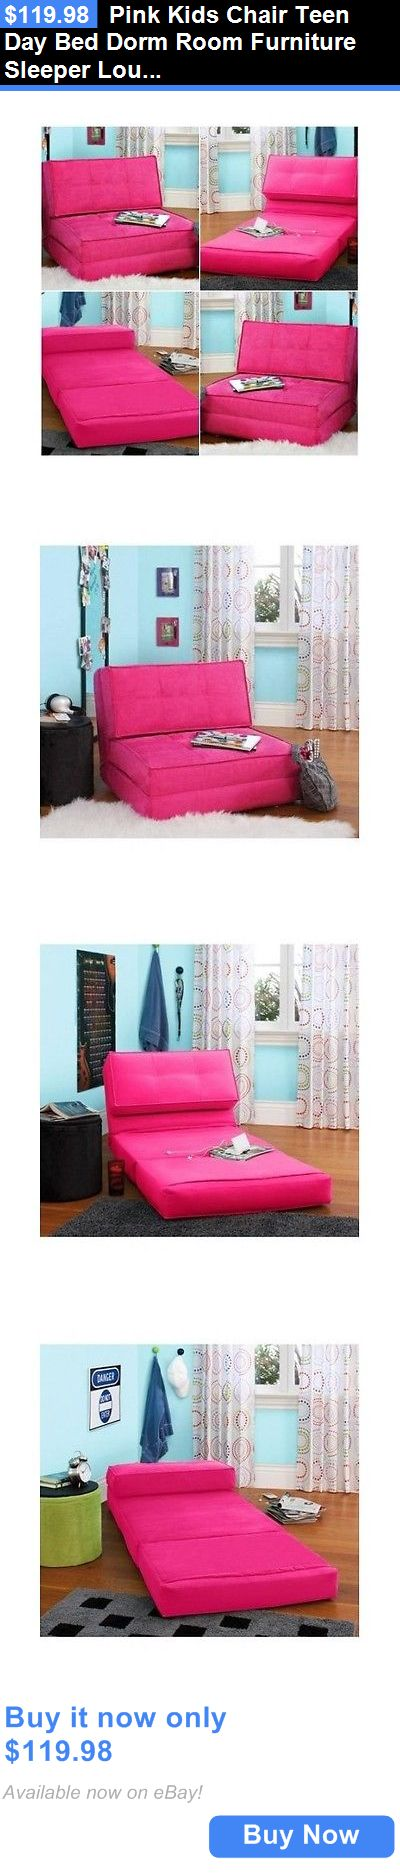 Kids Furniture: Pink Kids Chair Teen Day Bed Dorm Room Furniture Sleeper Lounge Mattress Bedroom BUY IT NOW ONLY: $119.98